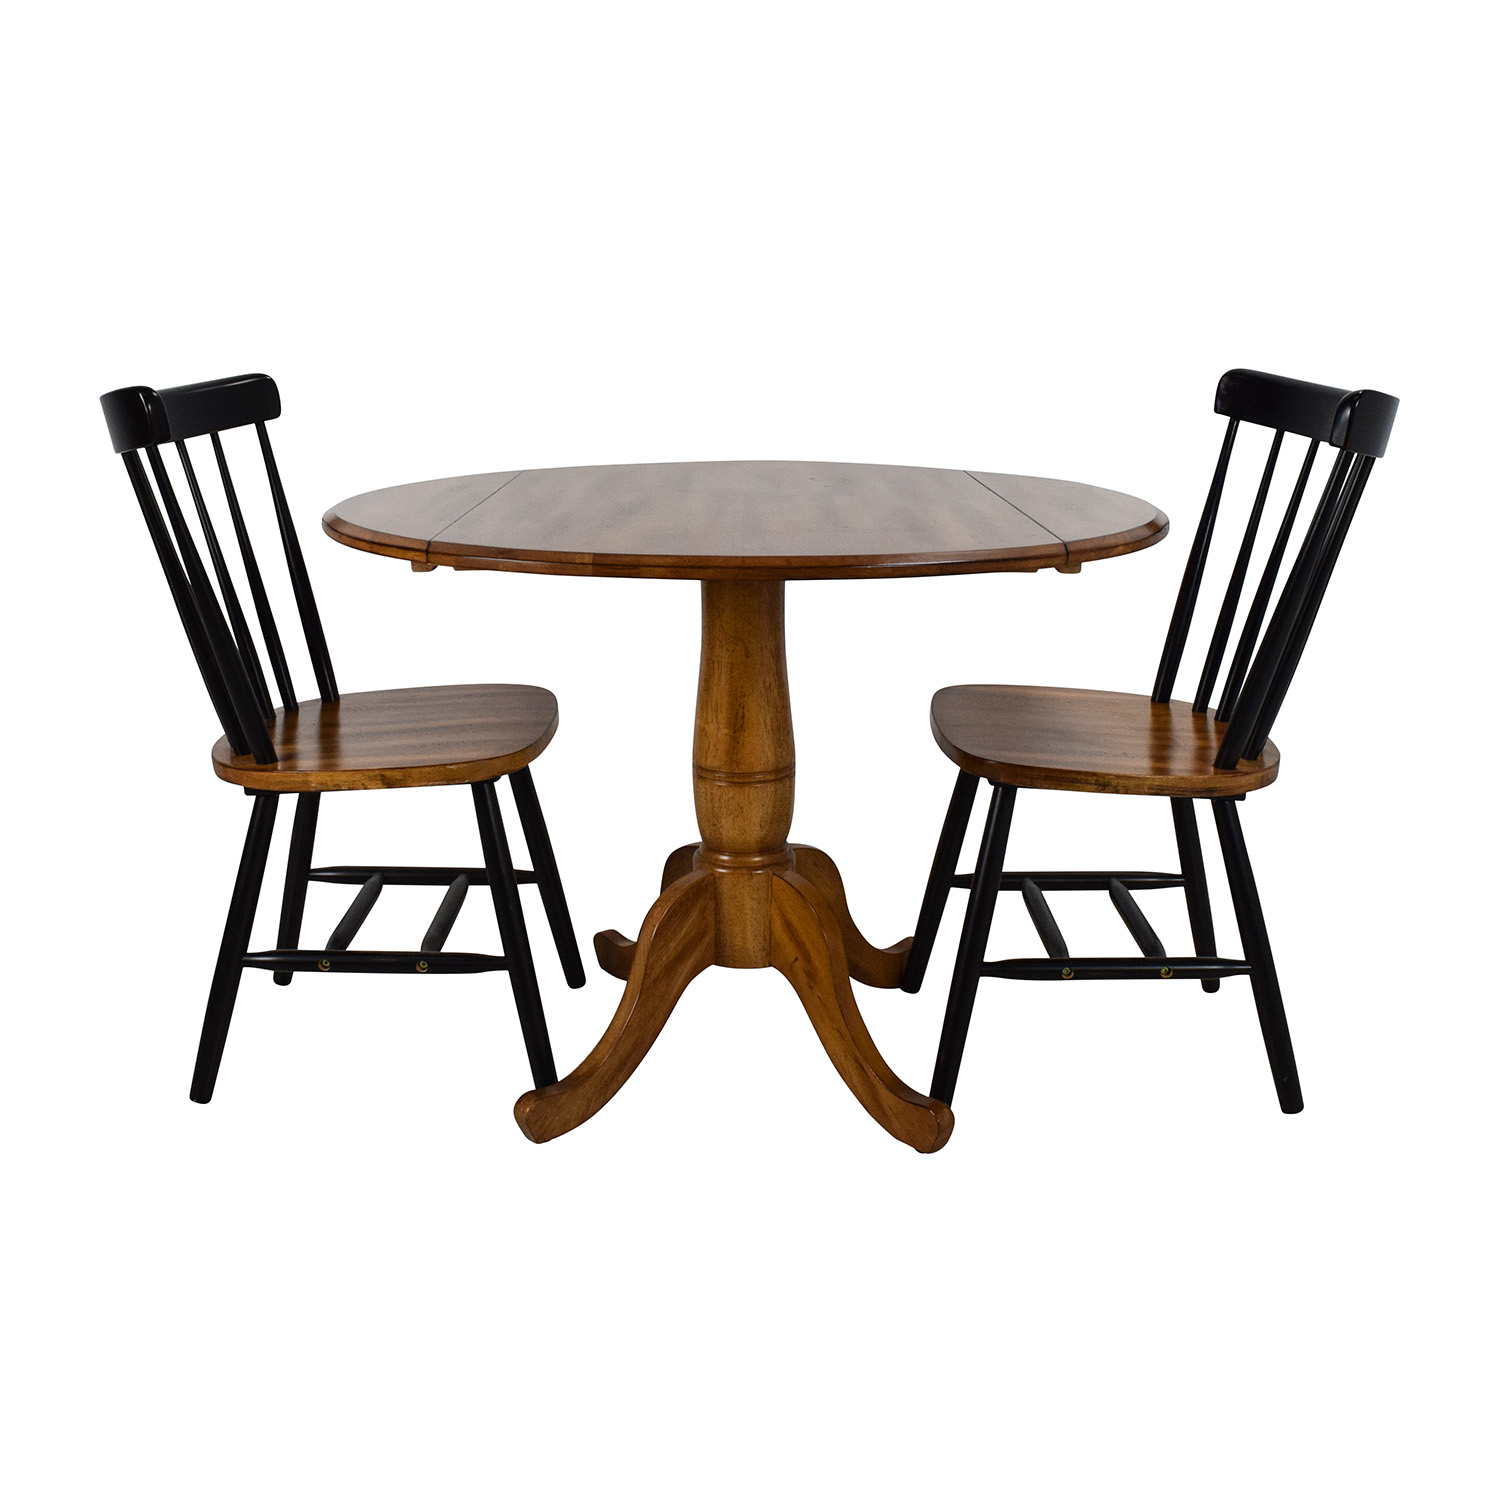 53% OFF Vortex Tulip Table and Vortex Chair Set Tables